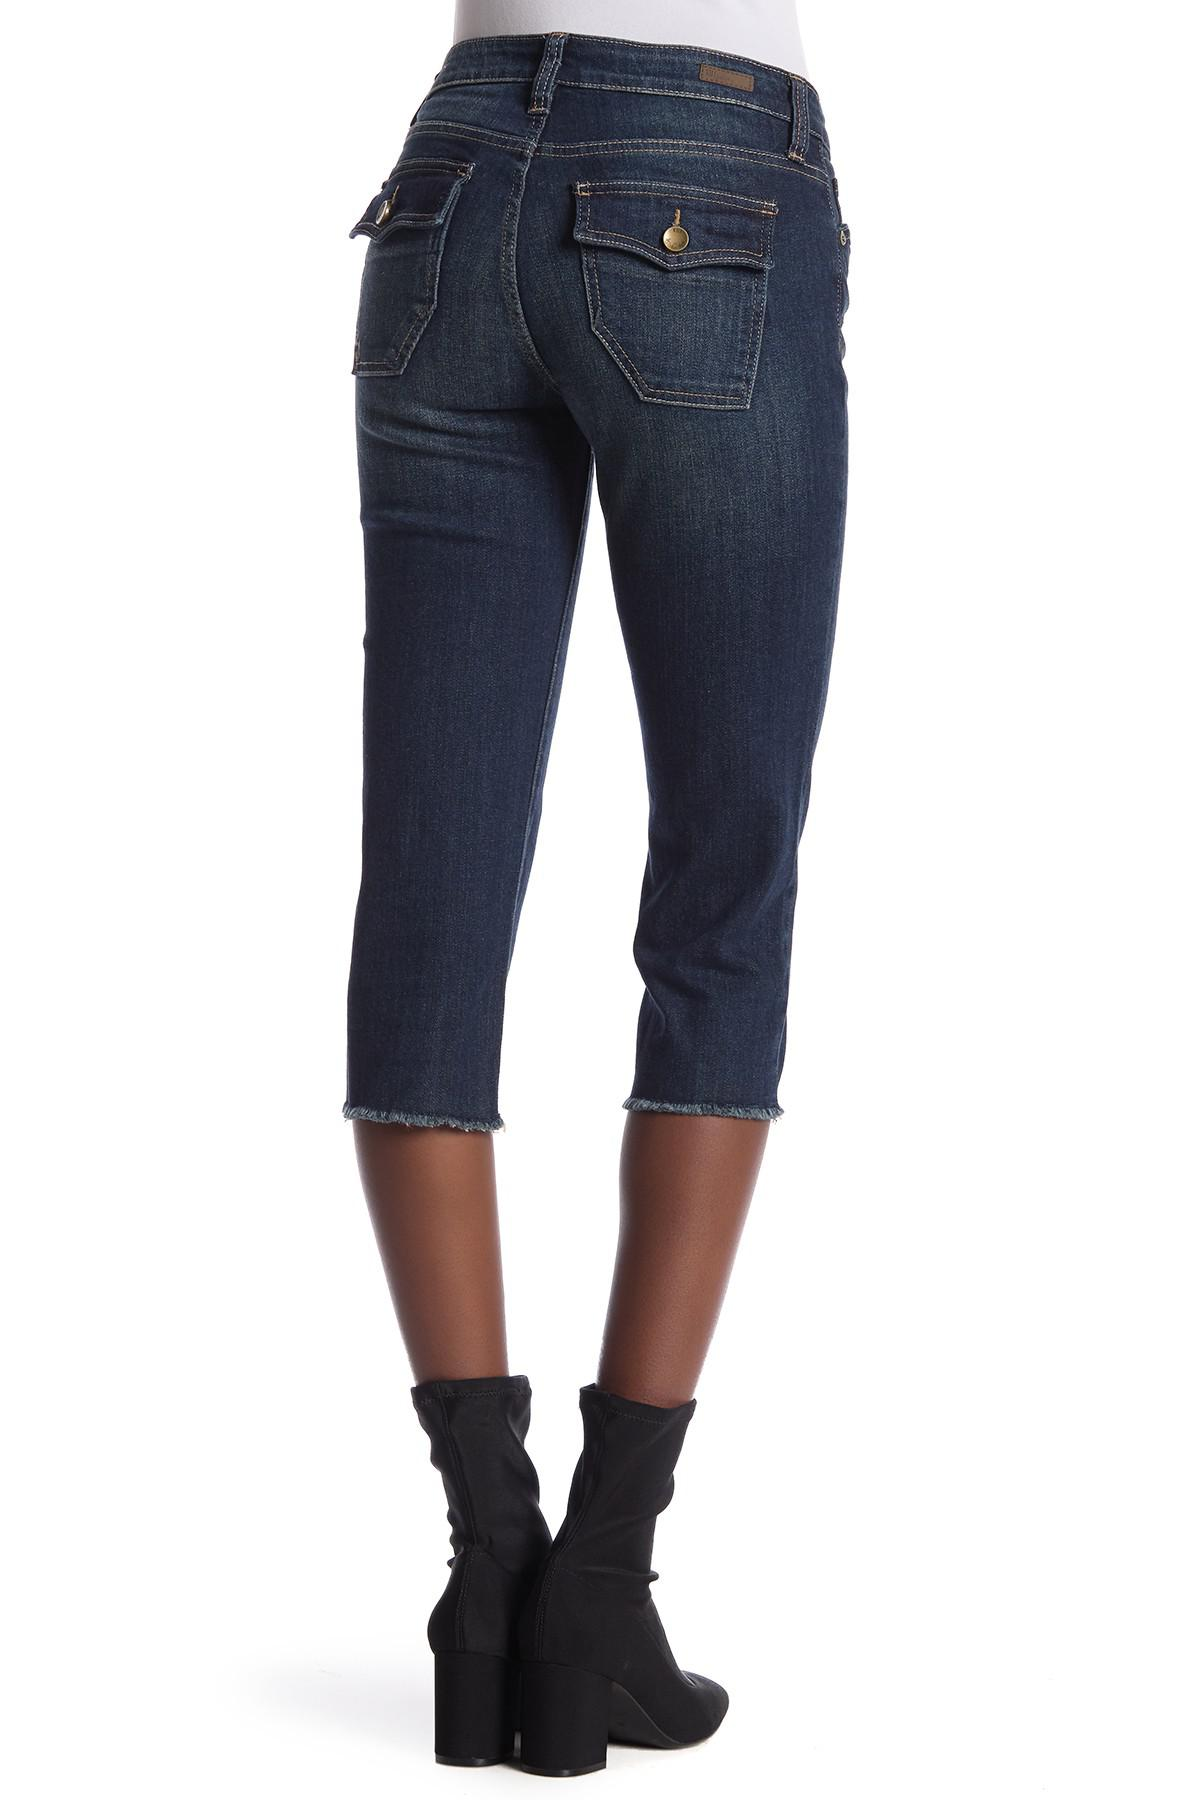 0943735ba7253 Lyst - Kut From The Kloth Natalie Frayed Hem Crop Jeans in Blue